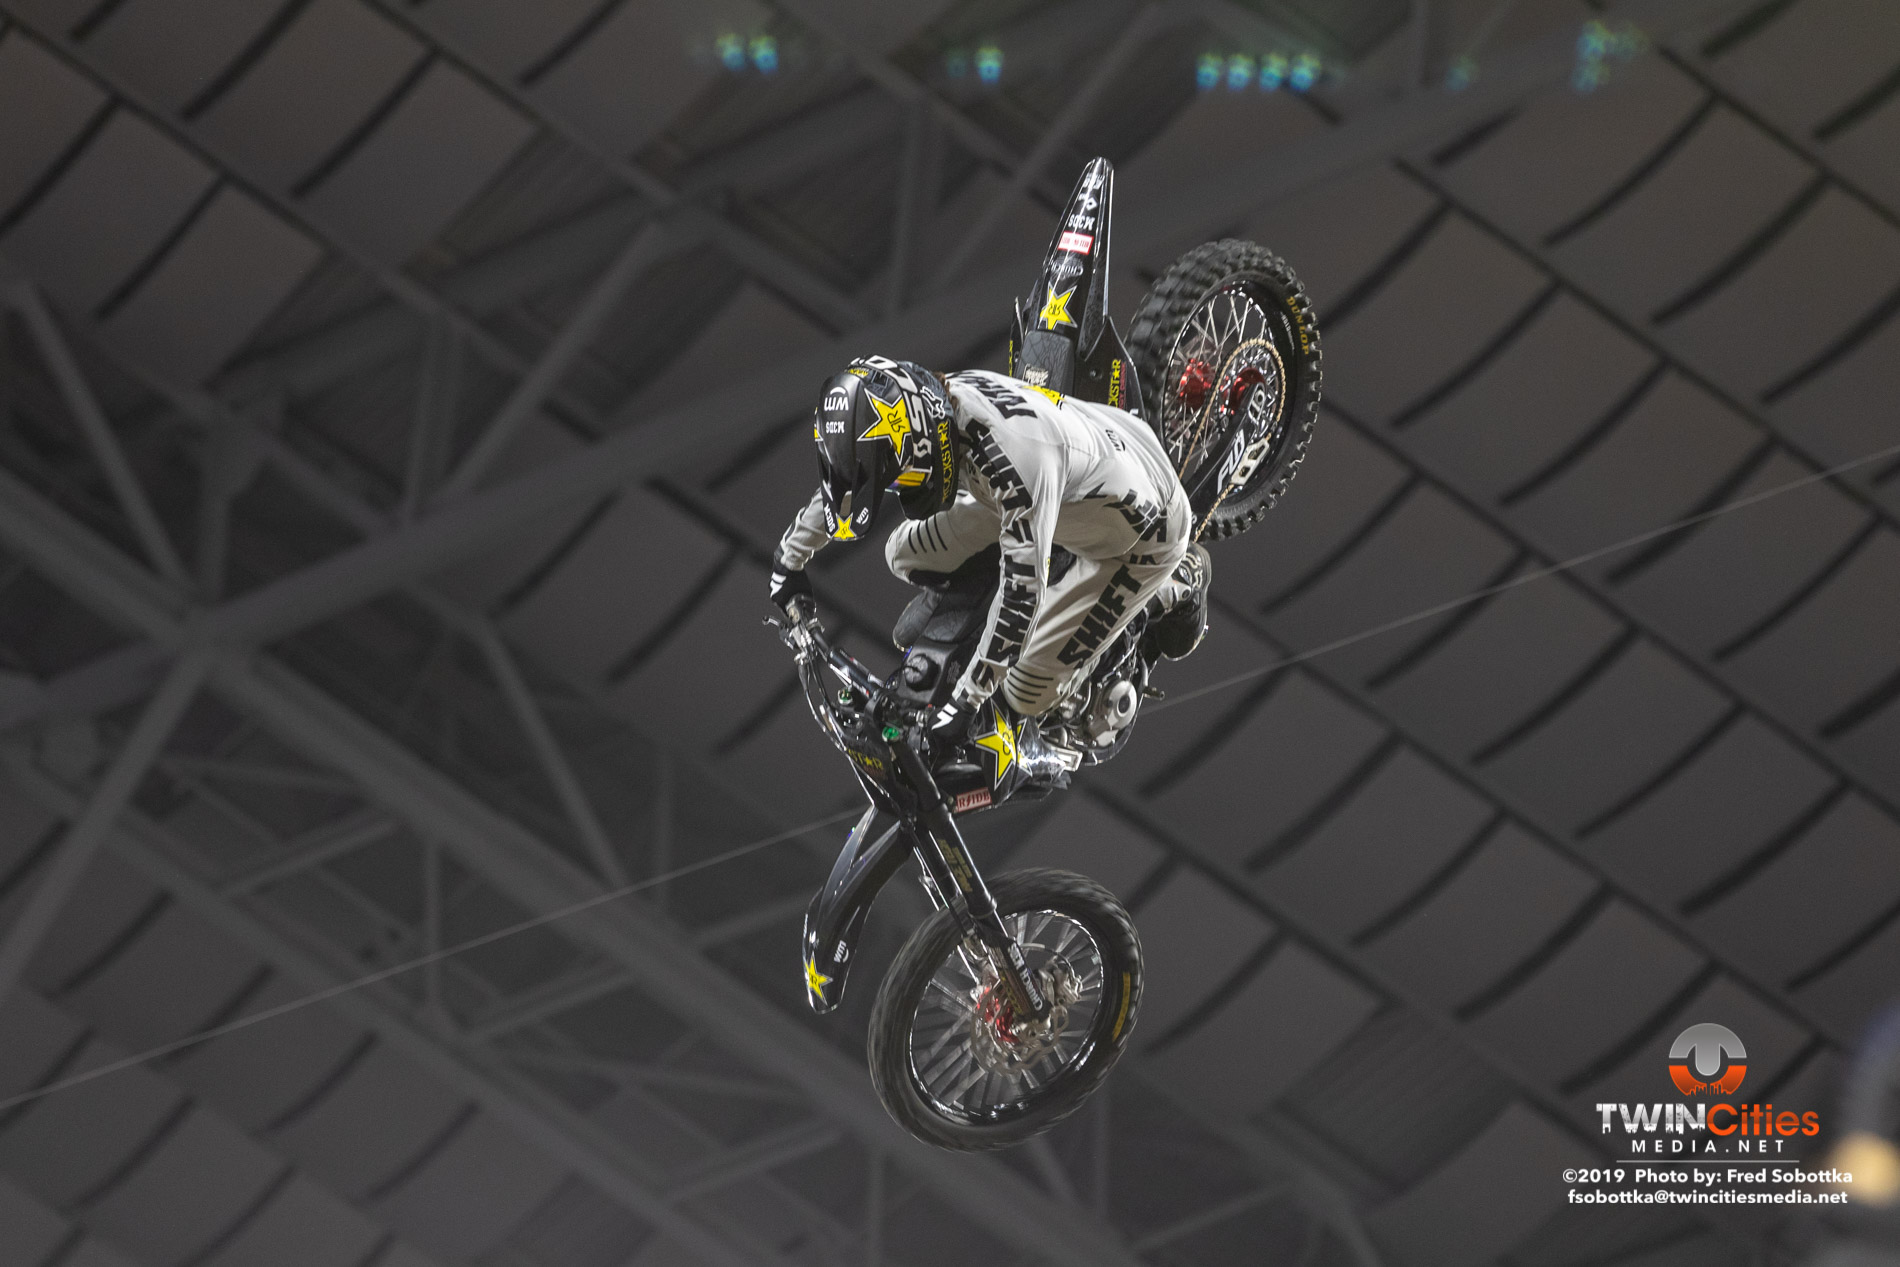 Moto-X-Quarterpipe-High-Air-01